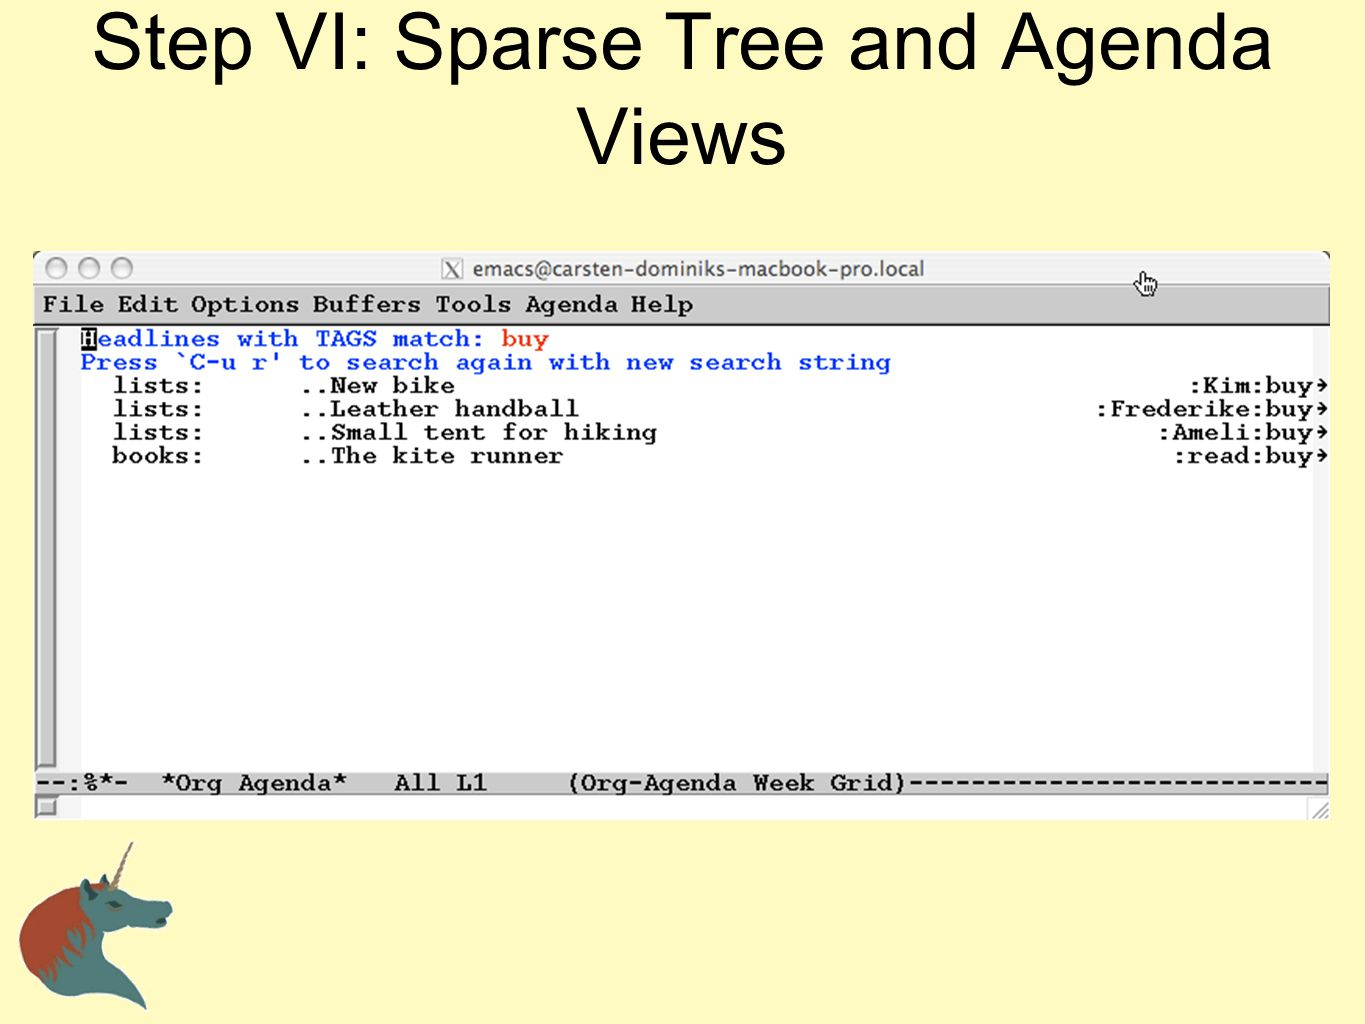 Step VI: Sparse Tree and Agenda Views